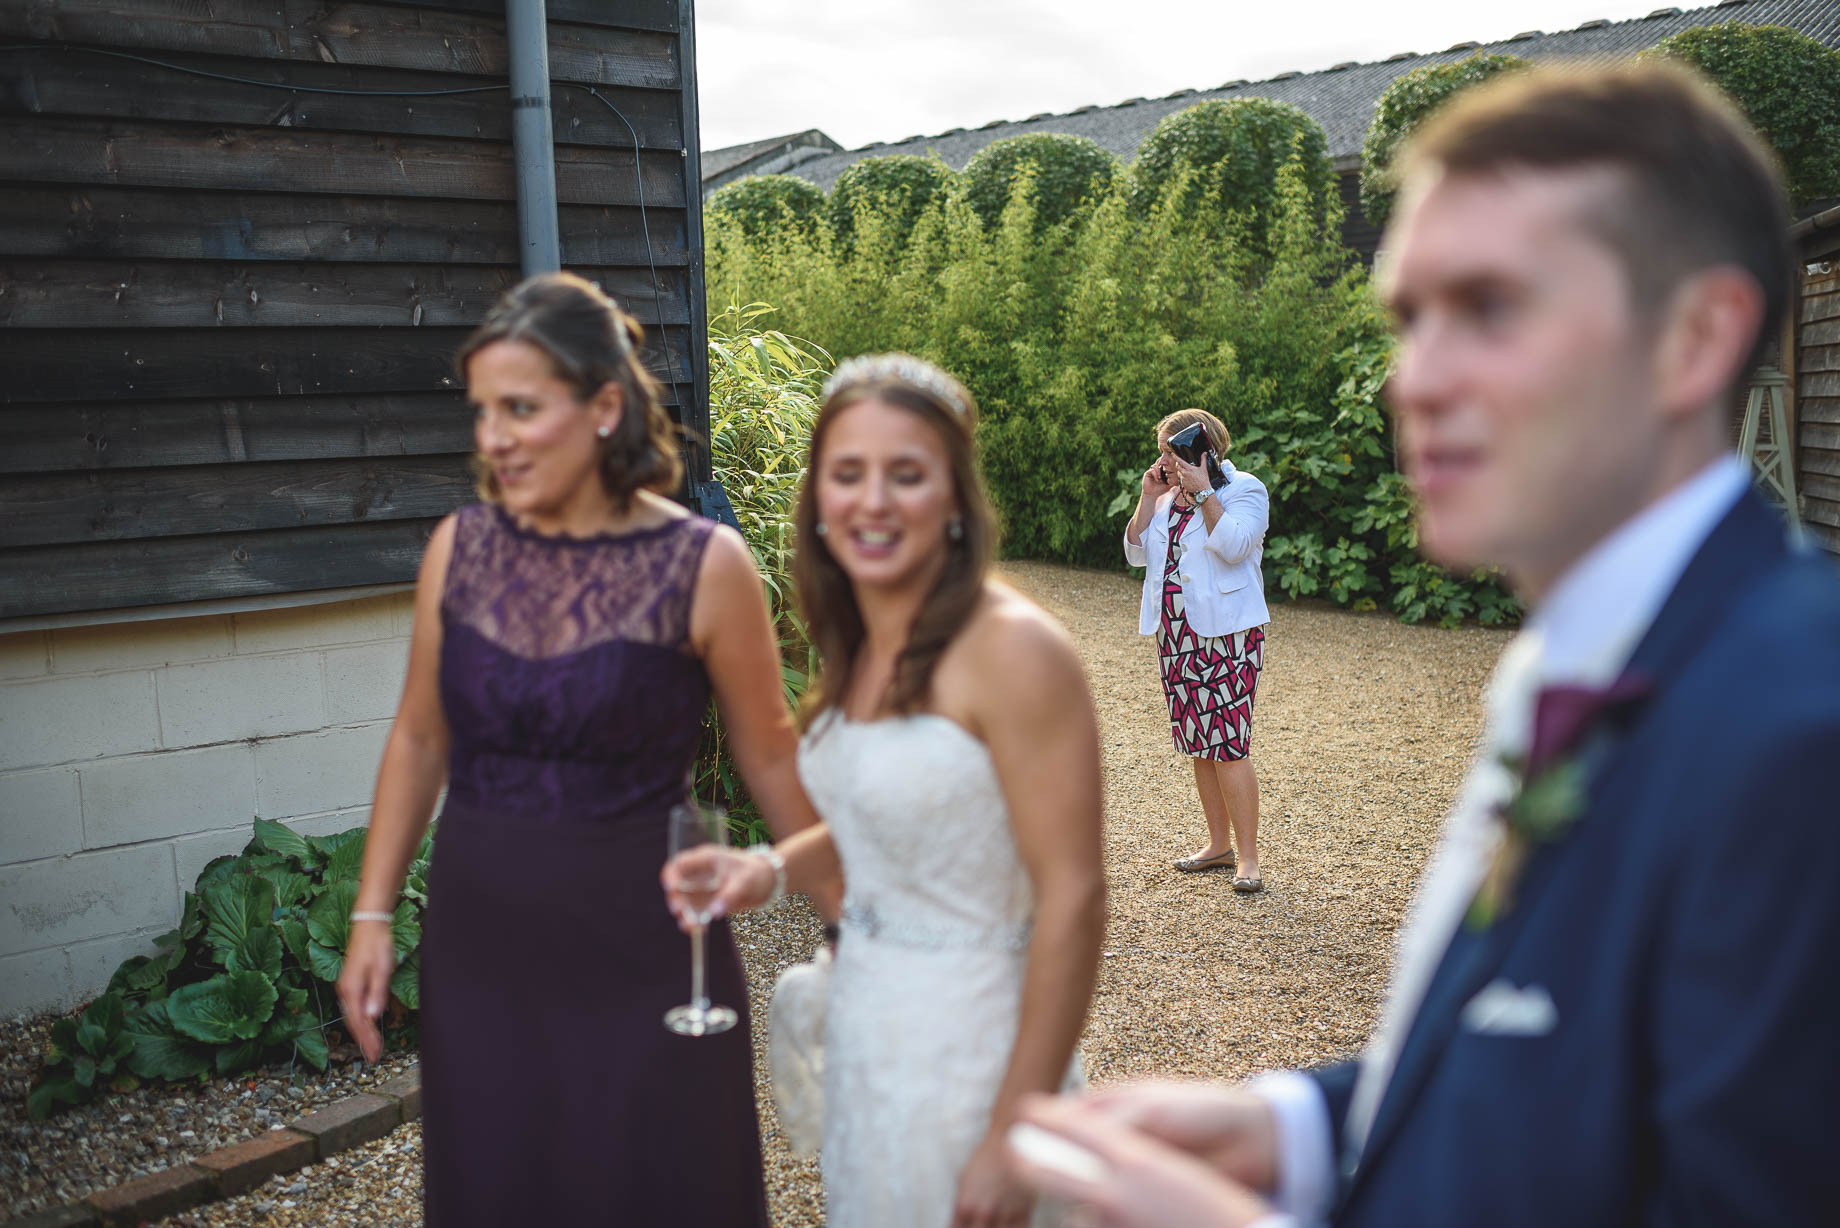 Gate Street Barn wedding photography - Guy Collier - Claire and Andy (123 of 192)